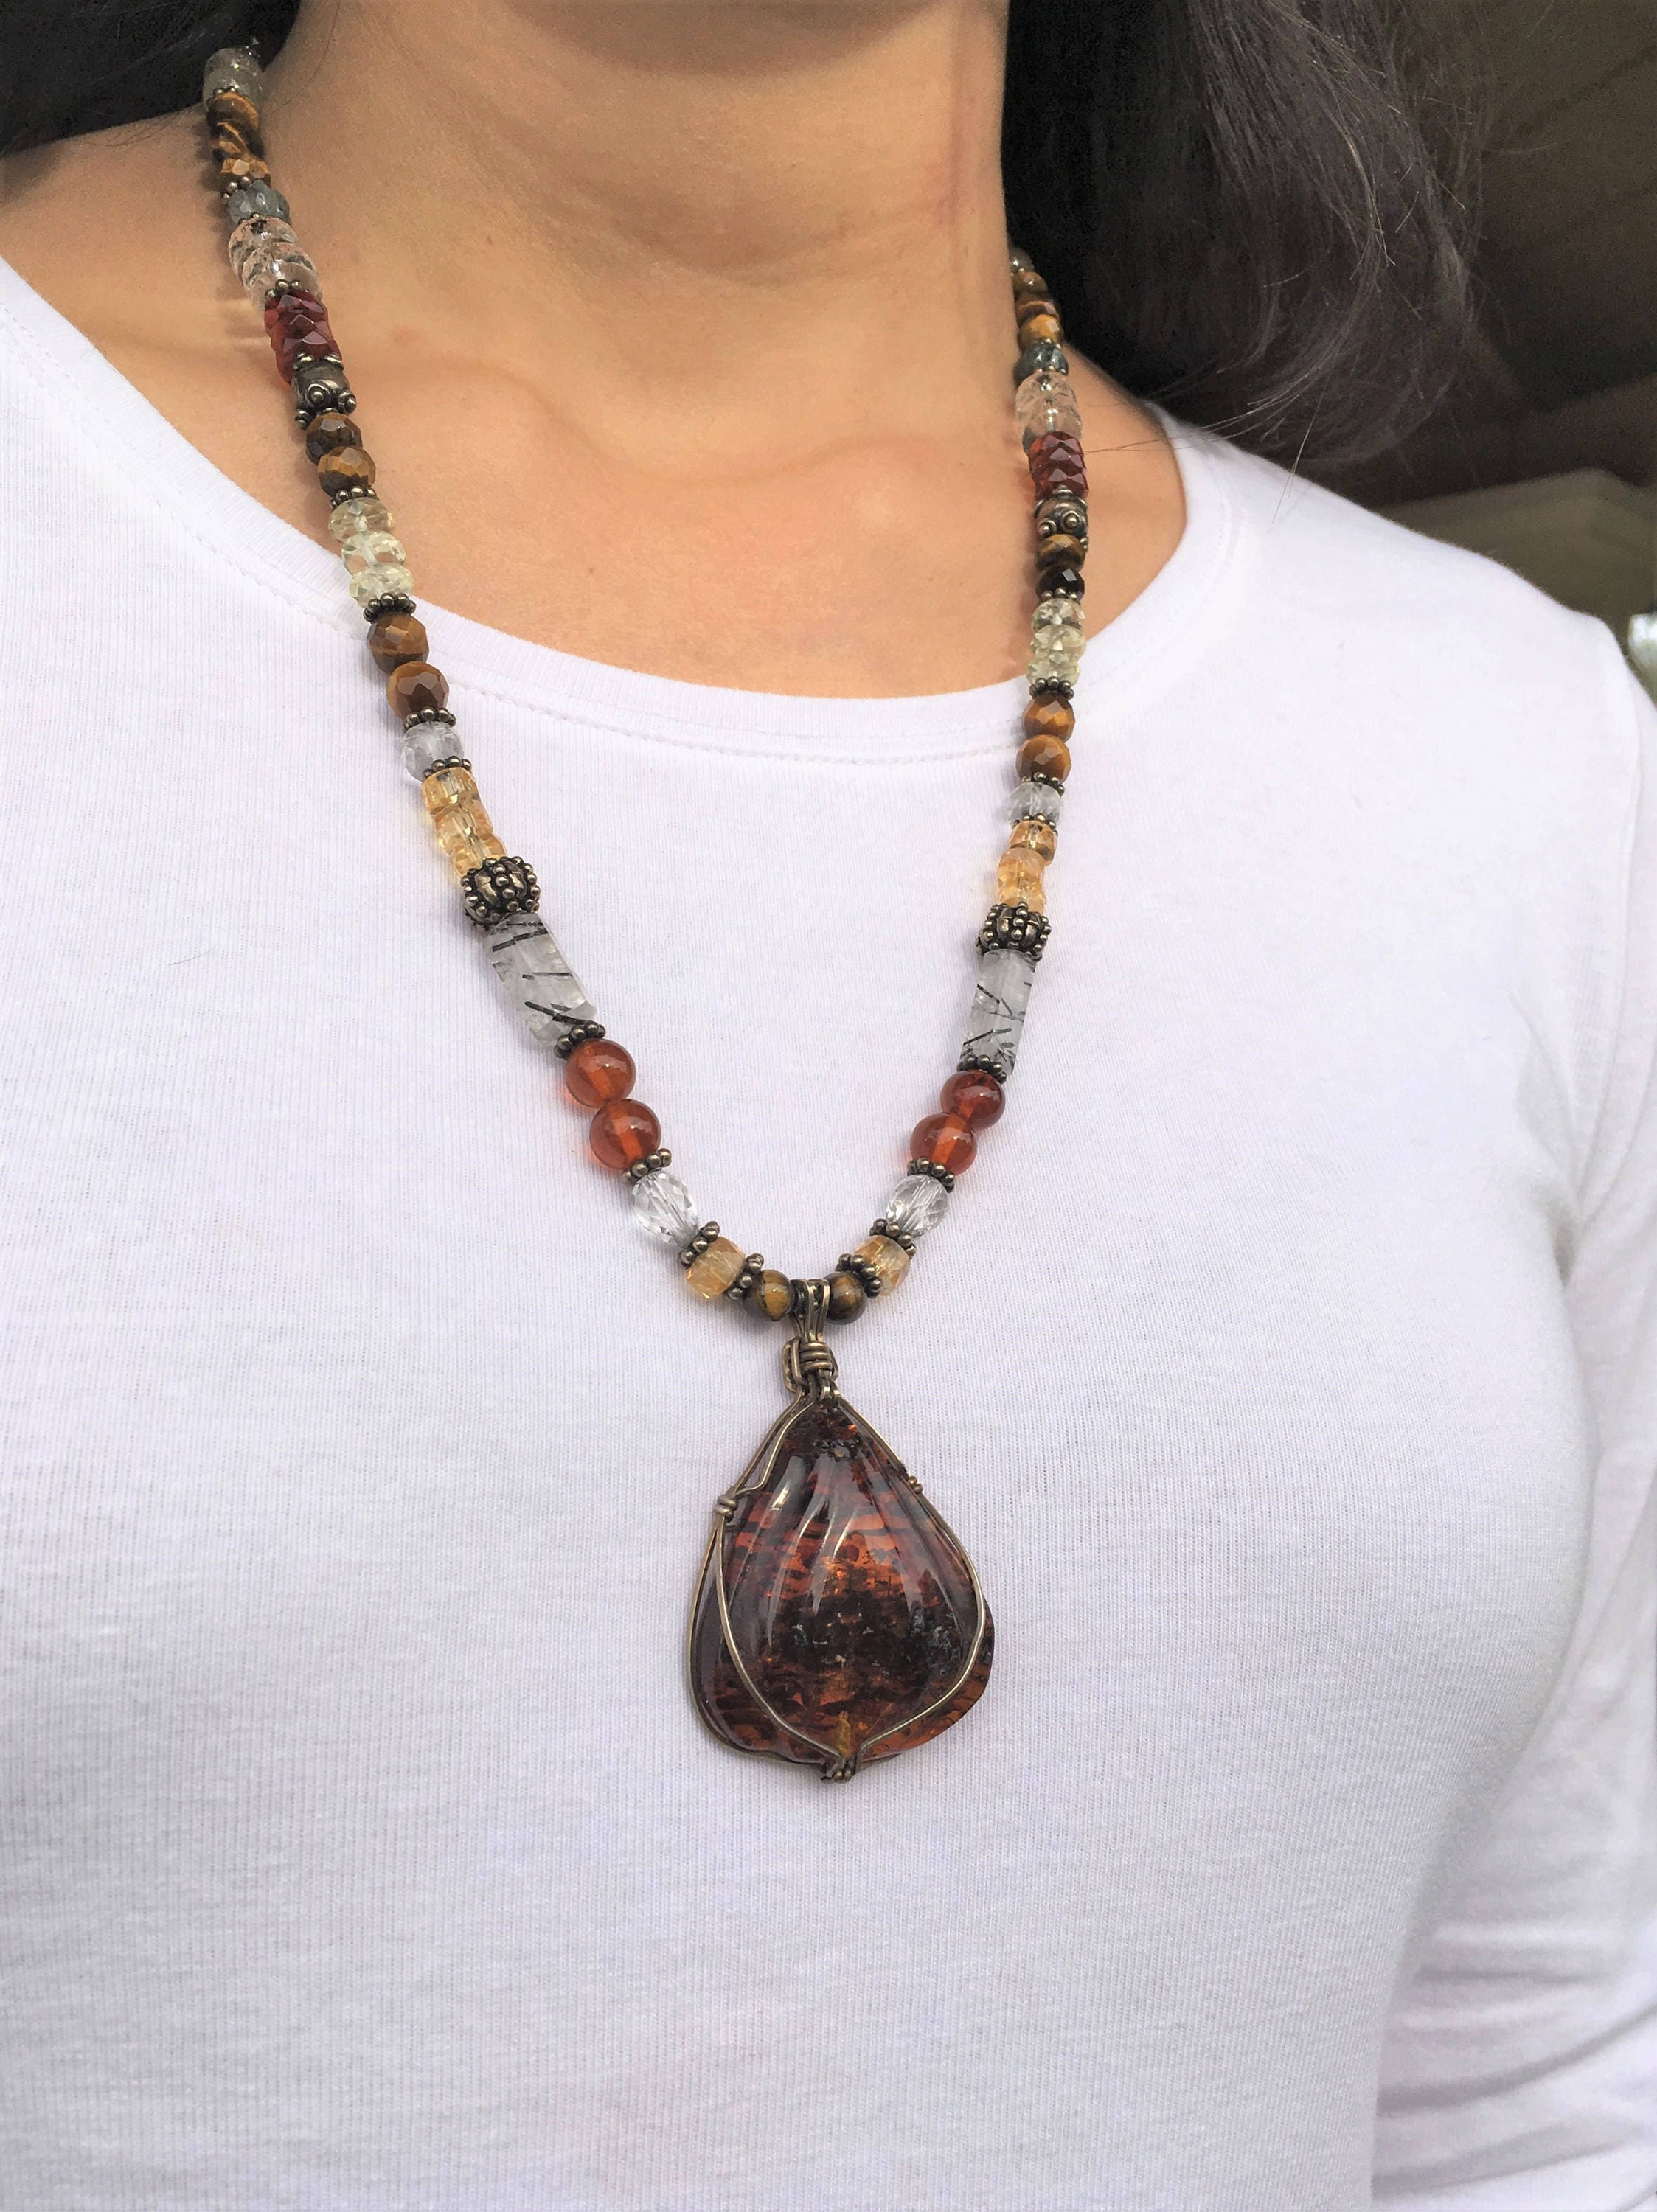 Personal power sedona large amber pendant chakra balancing personal power sedona large amber pendant chakra balancing self confidence reiki charged healing sacral chakra wiccan yoga mozeypictures Image collections